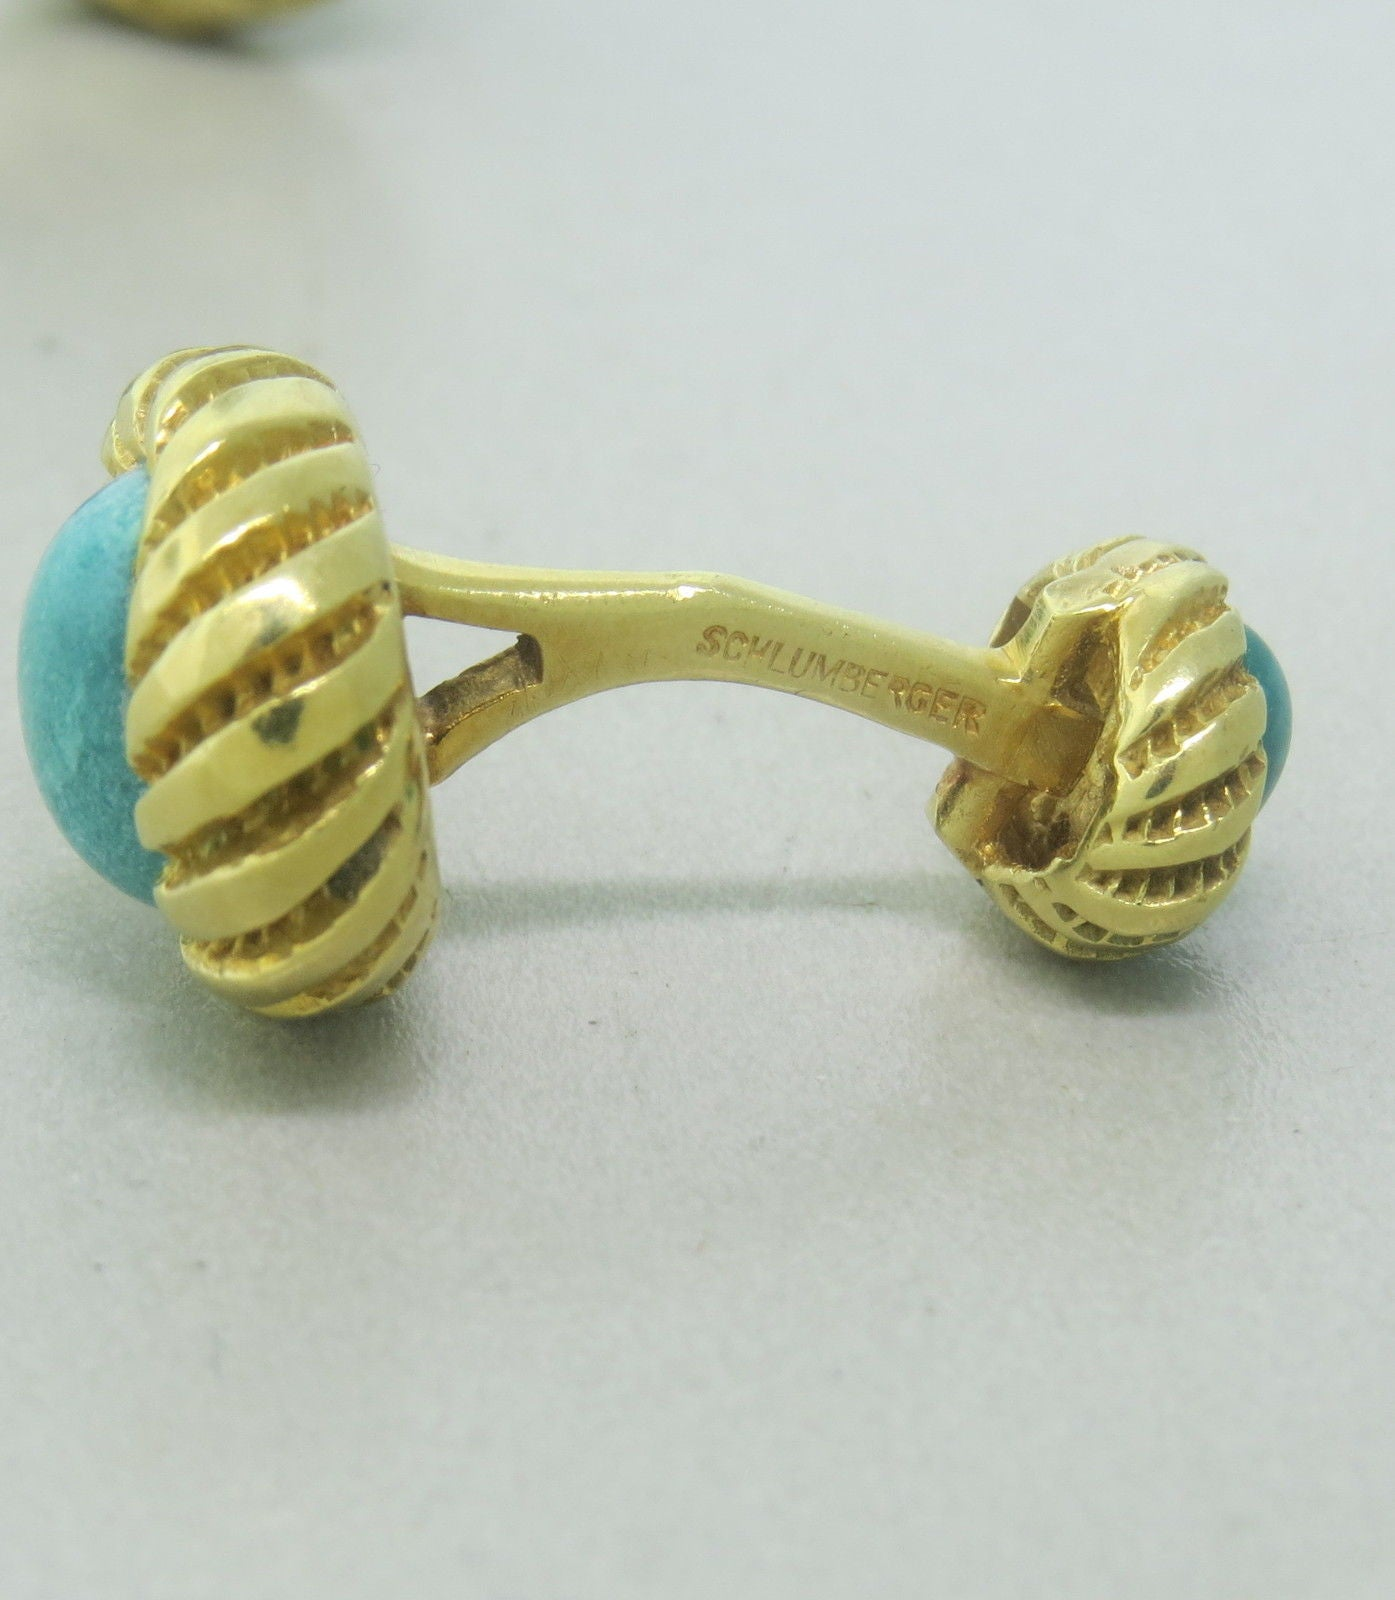 Tiffany & Co Schlumberger Gold Turquoise Cufflinks